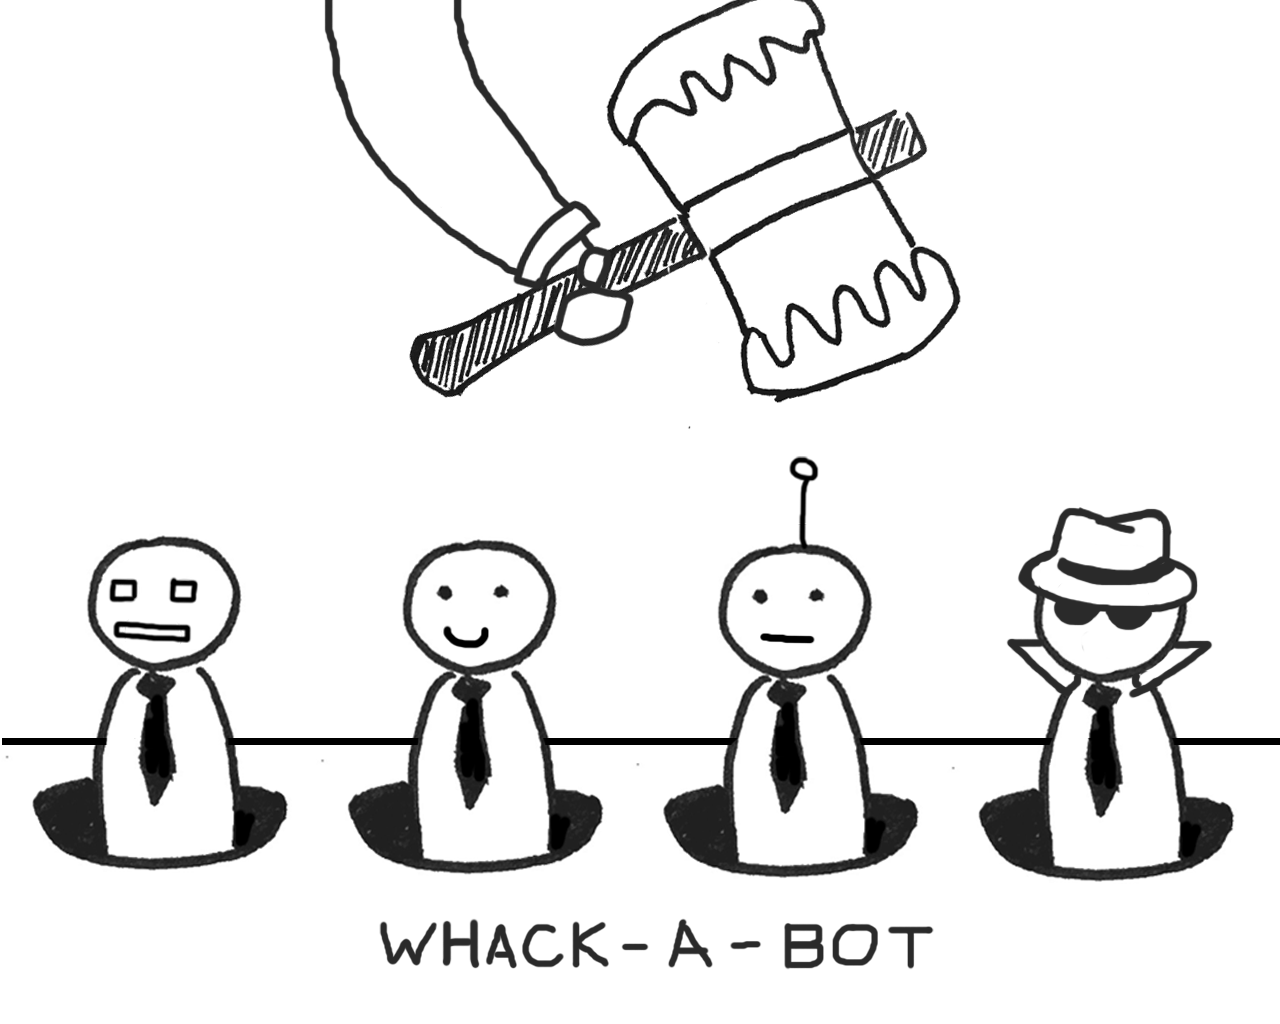 Whack-a-Bot: Fighting Fake News | SmartUp